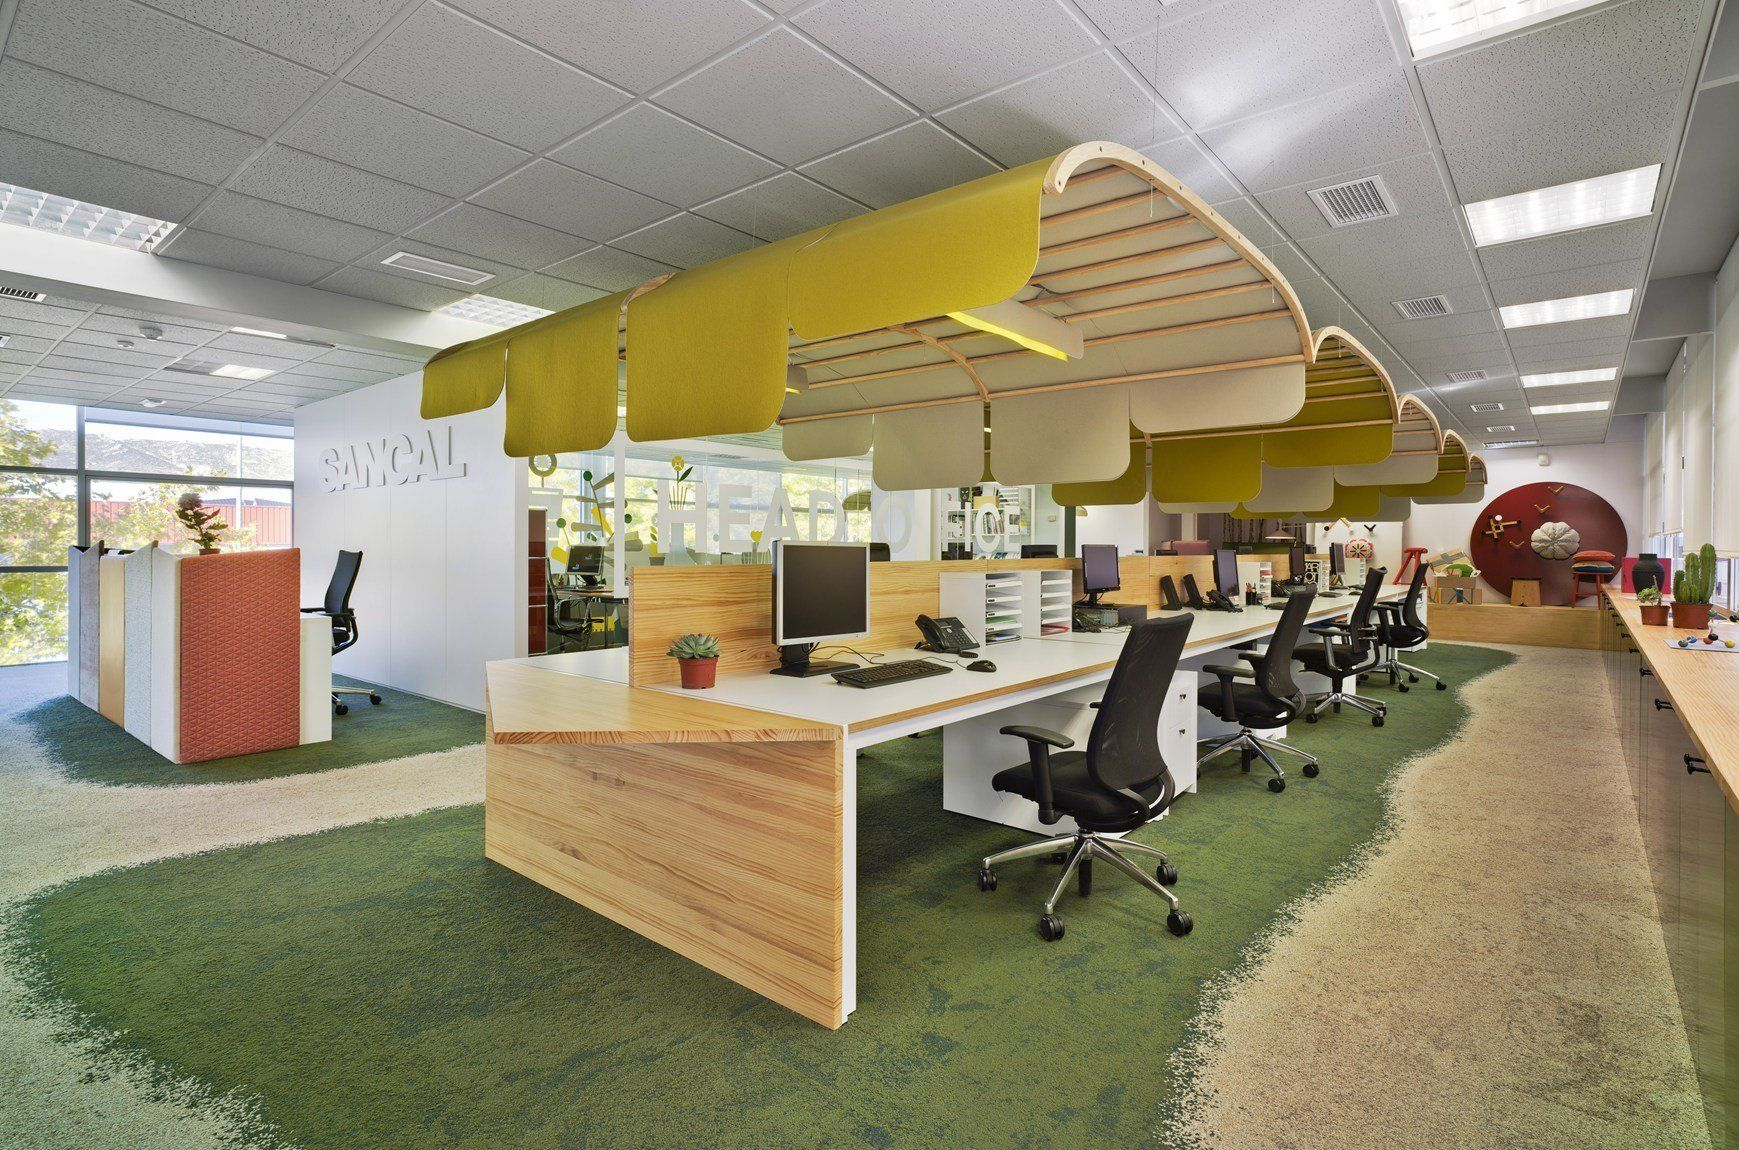 New sancal office an interior garden where vitality can flourish - Hello this is my new picture garden interior ...